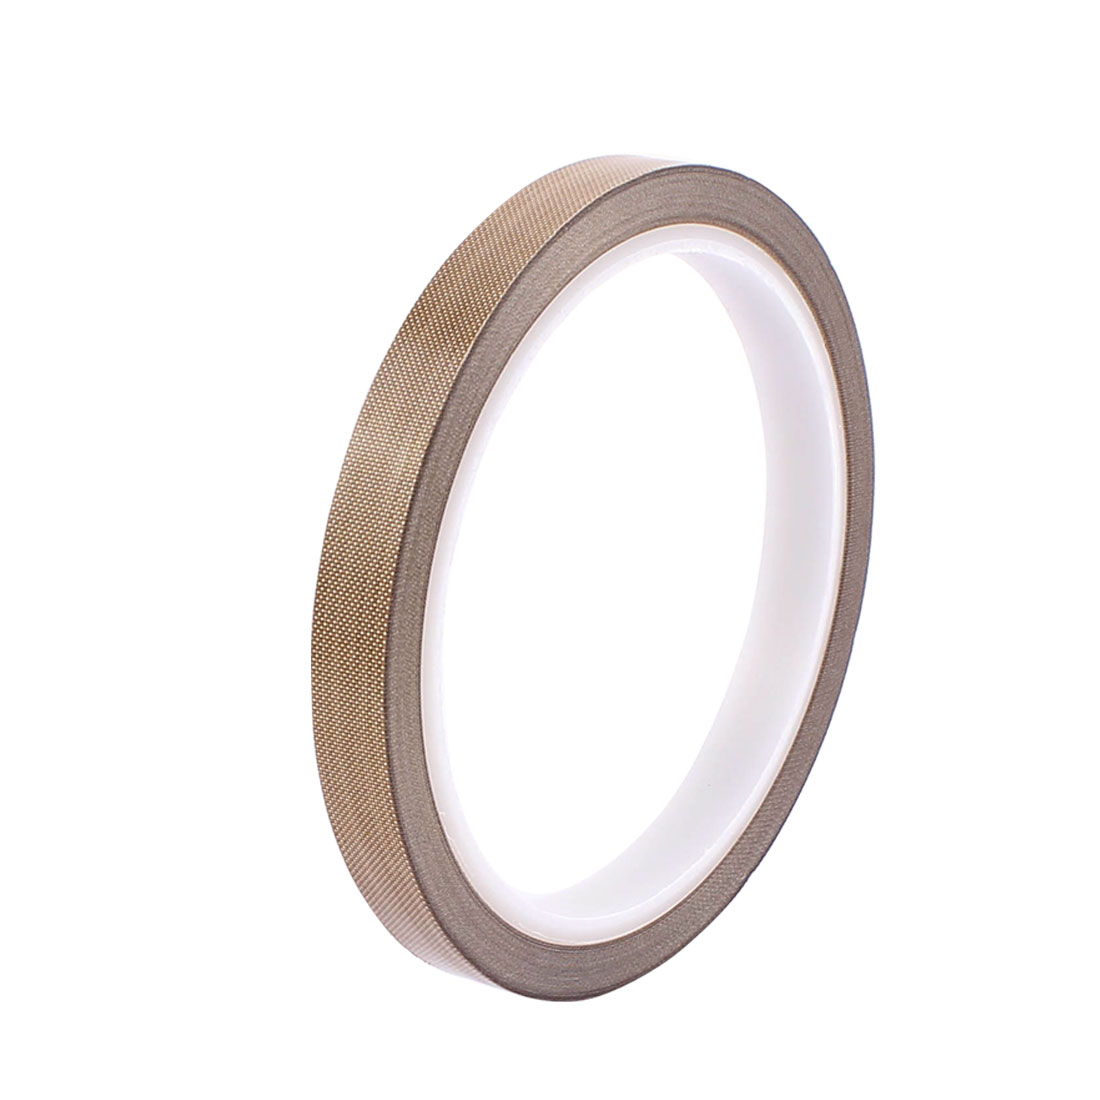 10mm Width 0.18mm Thickness 10M Long Nonstick High Temperature PTFE Adhesive Tape